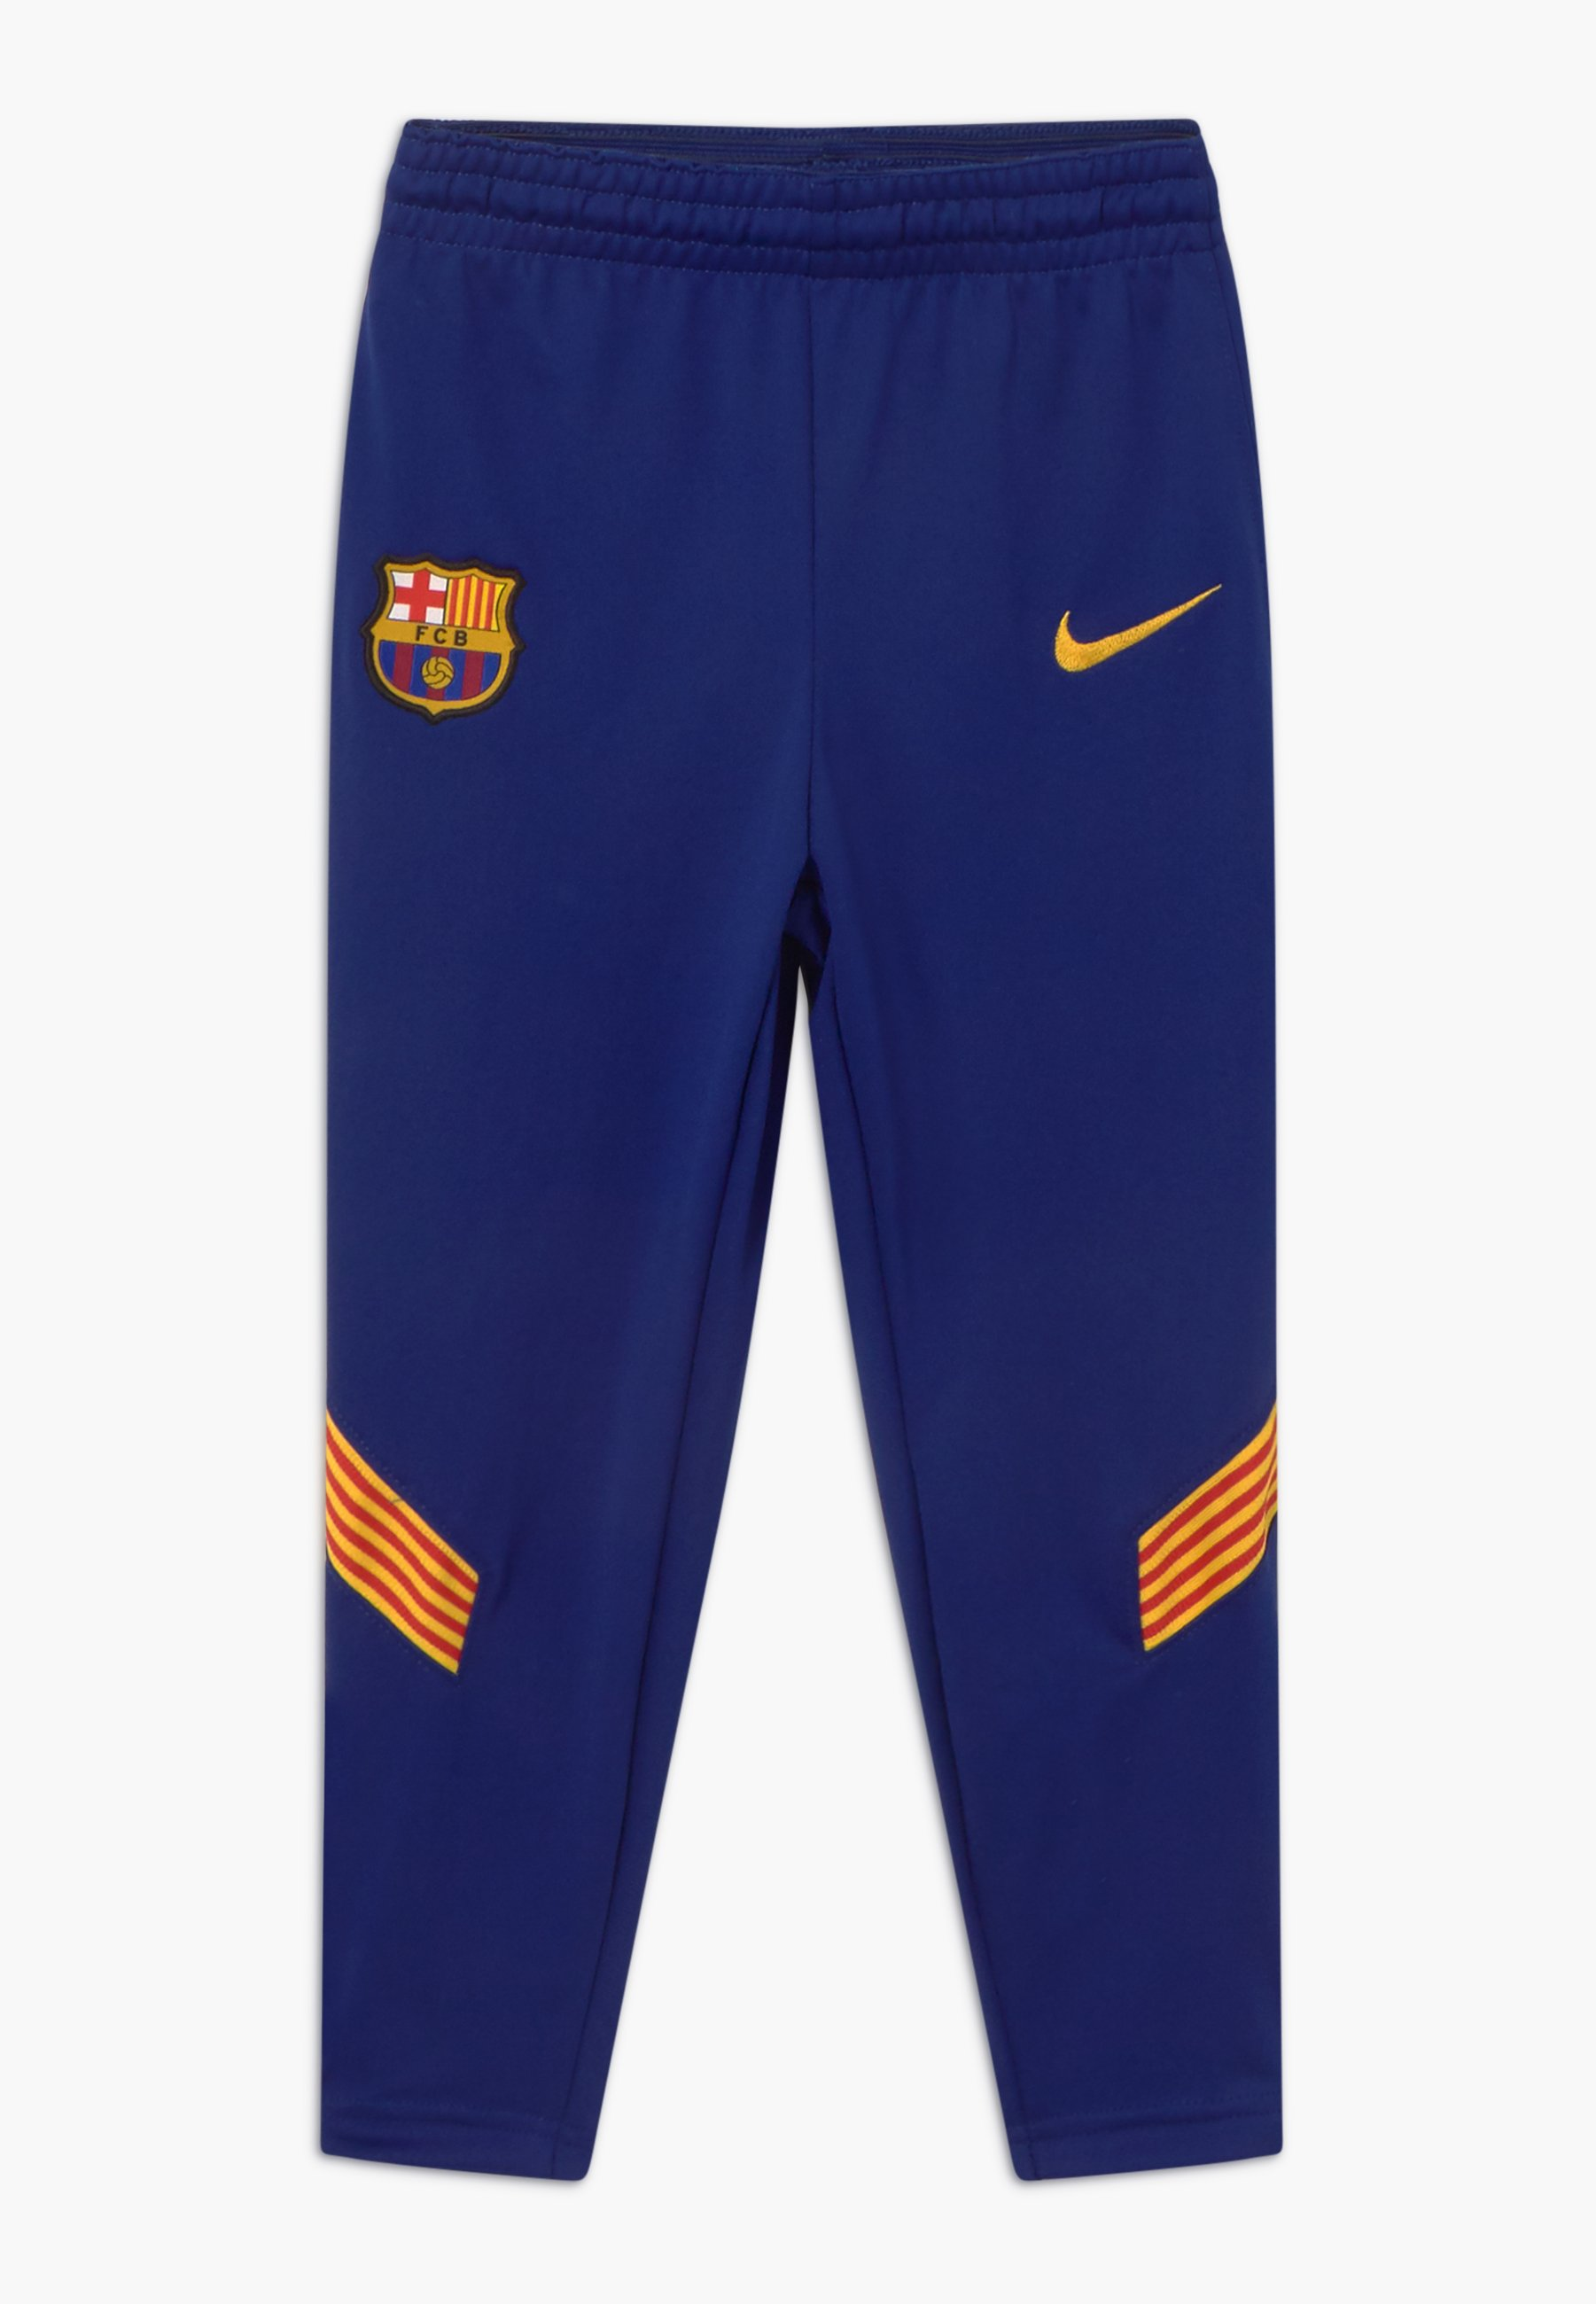 FC BARCELONA SET Fanartikel noble reddeep royal blueamarillo